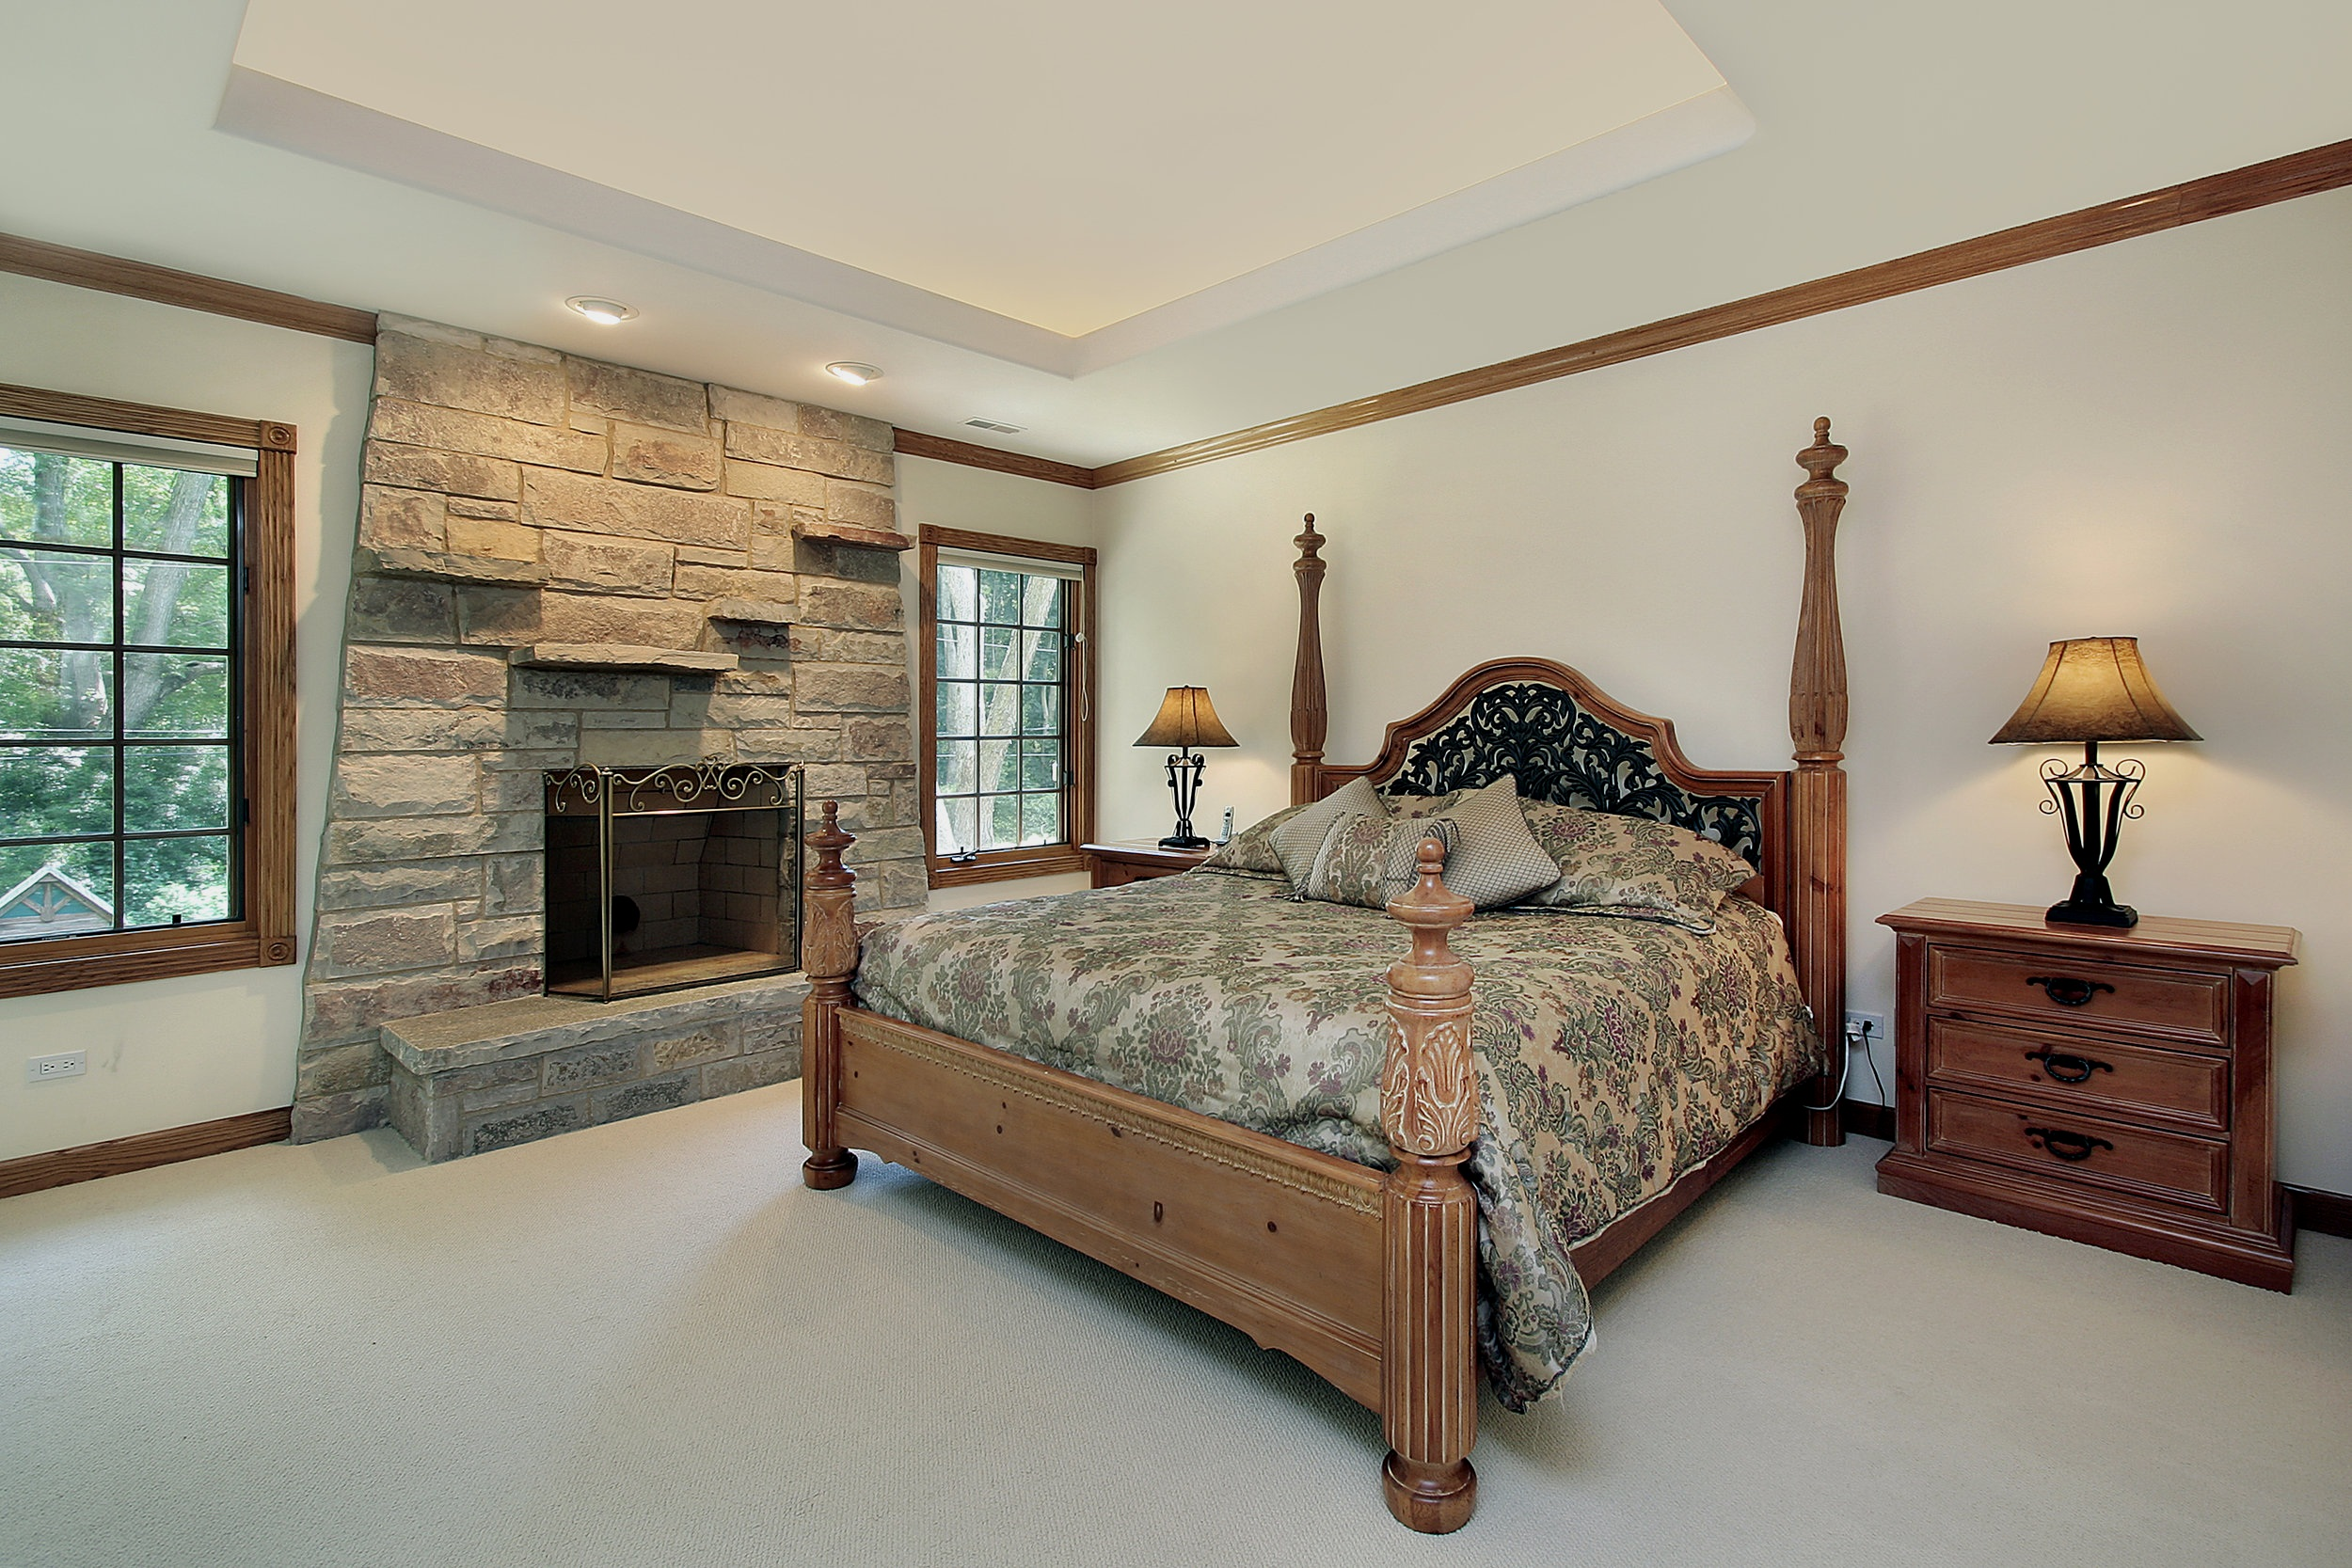 Master Bedroom in Luxury Home with Stone Fireplace